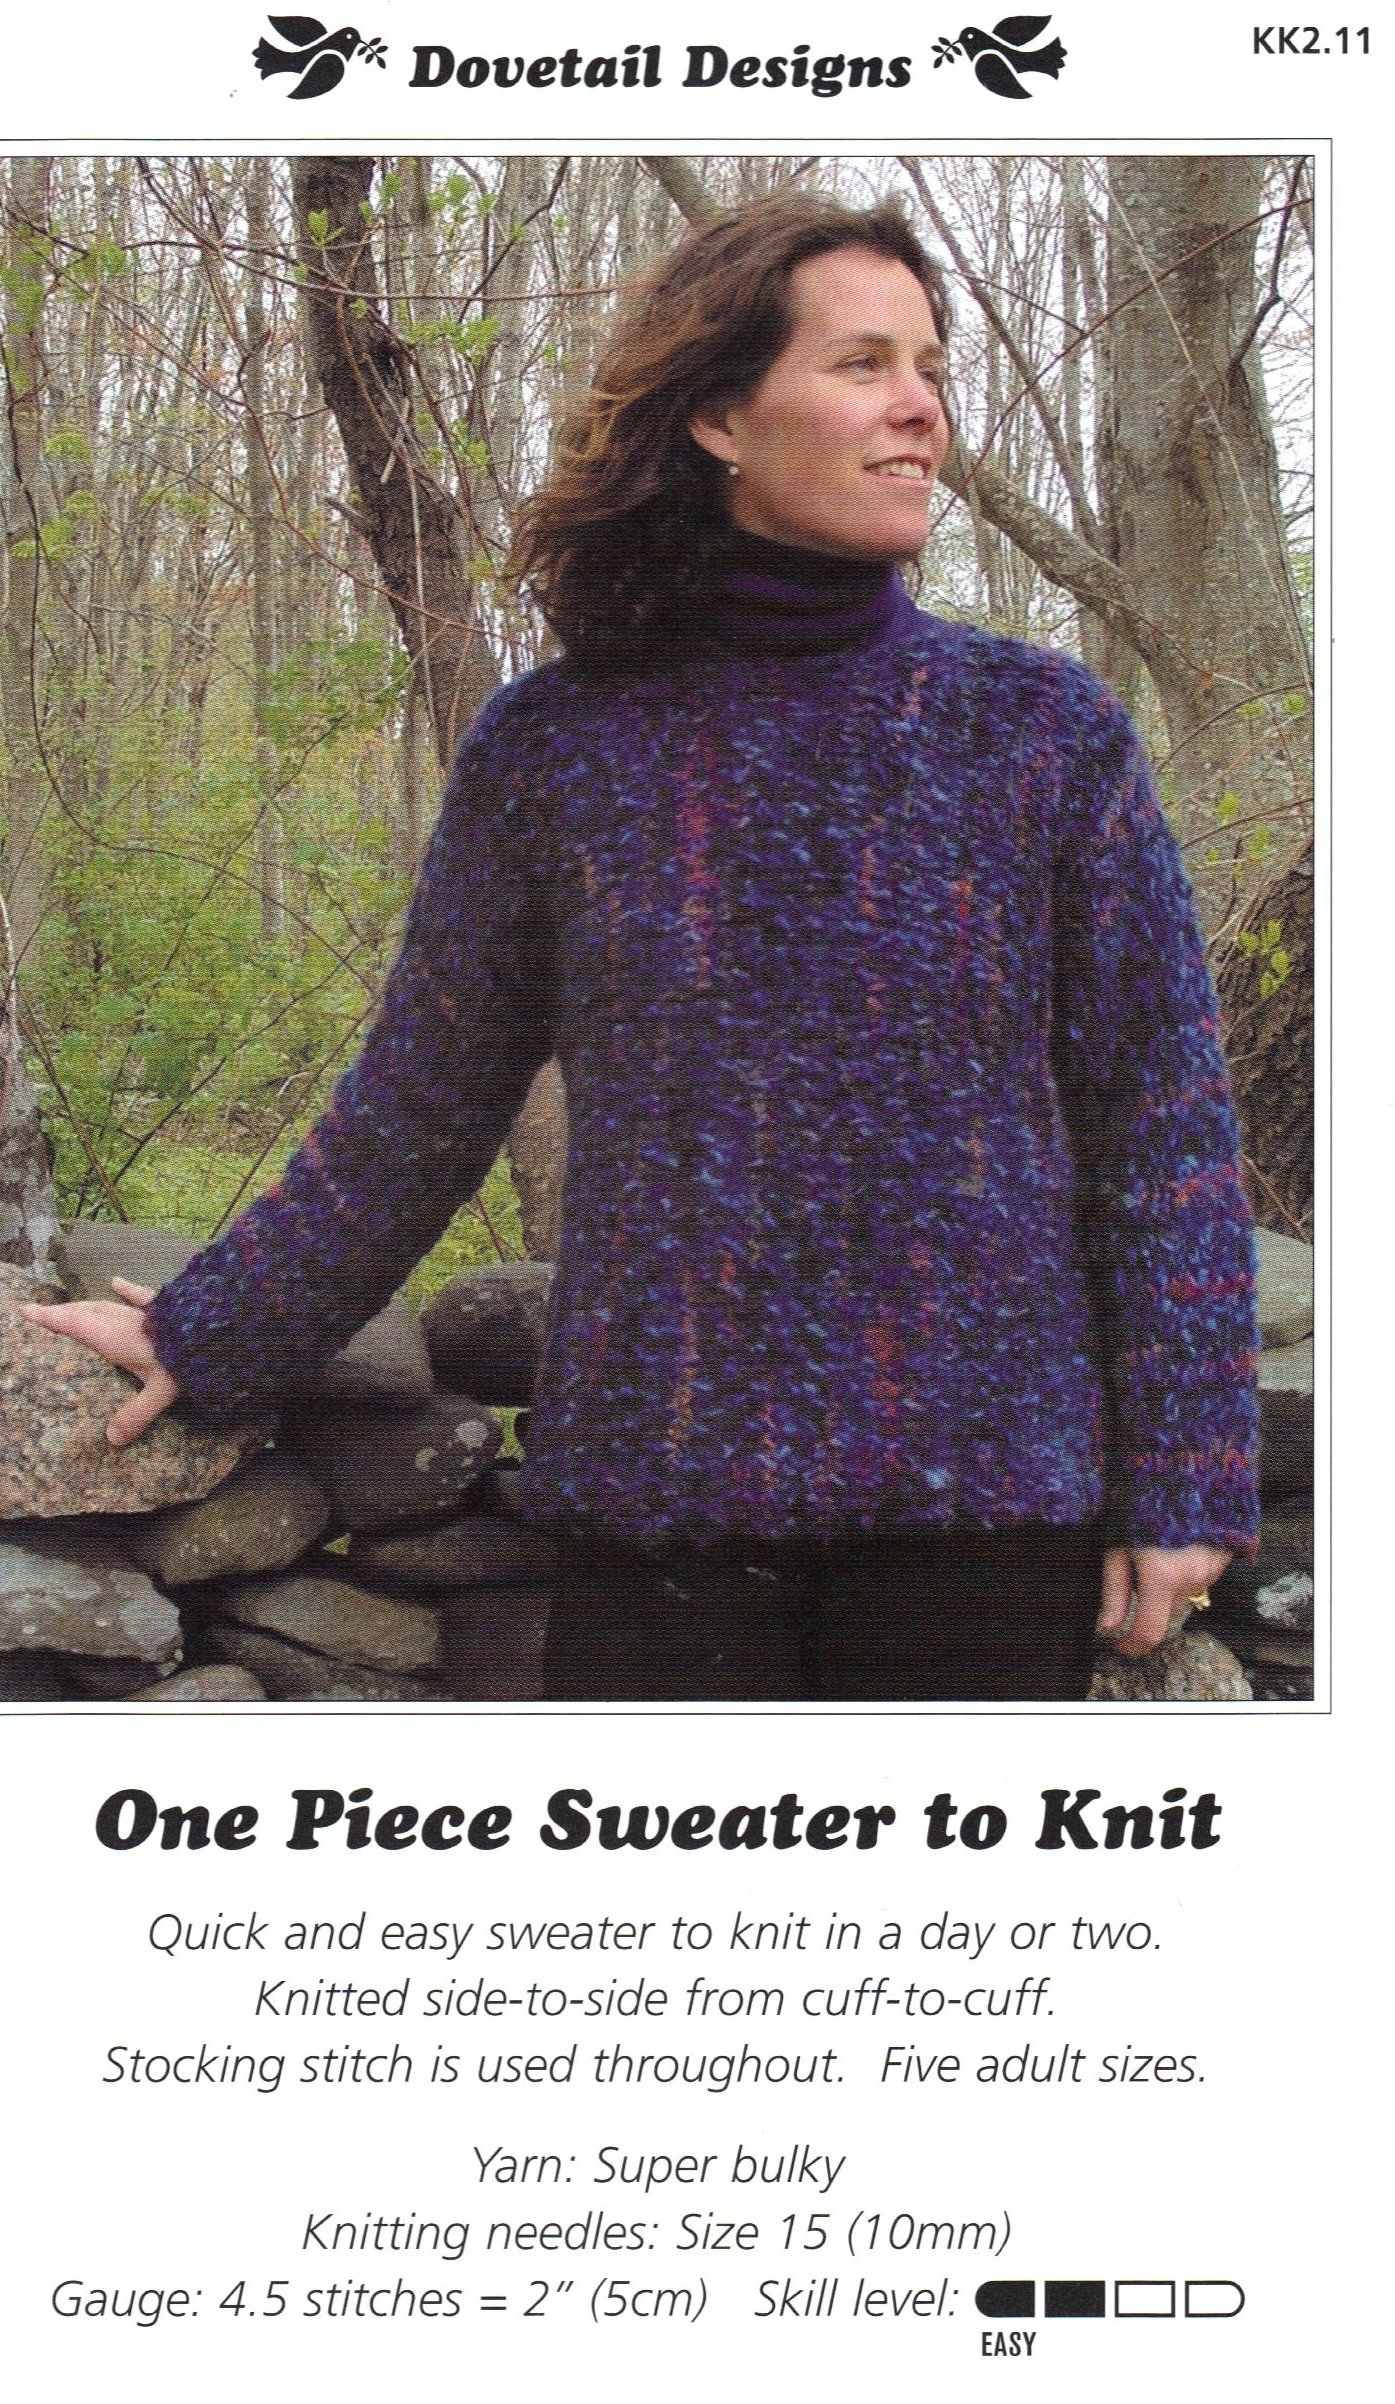 One Piece Sweater to Knit - One Knitting Pattern - Dovetail Designs ...